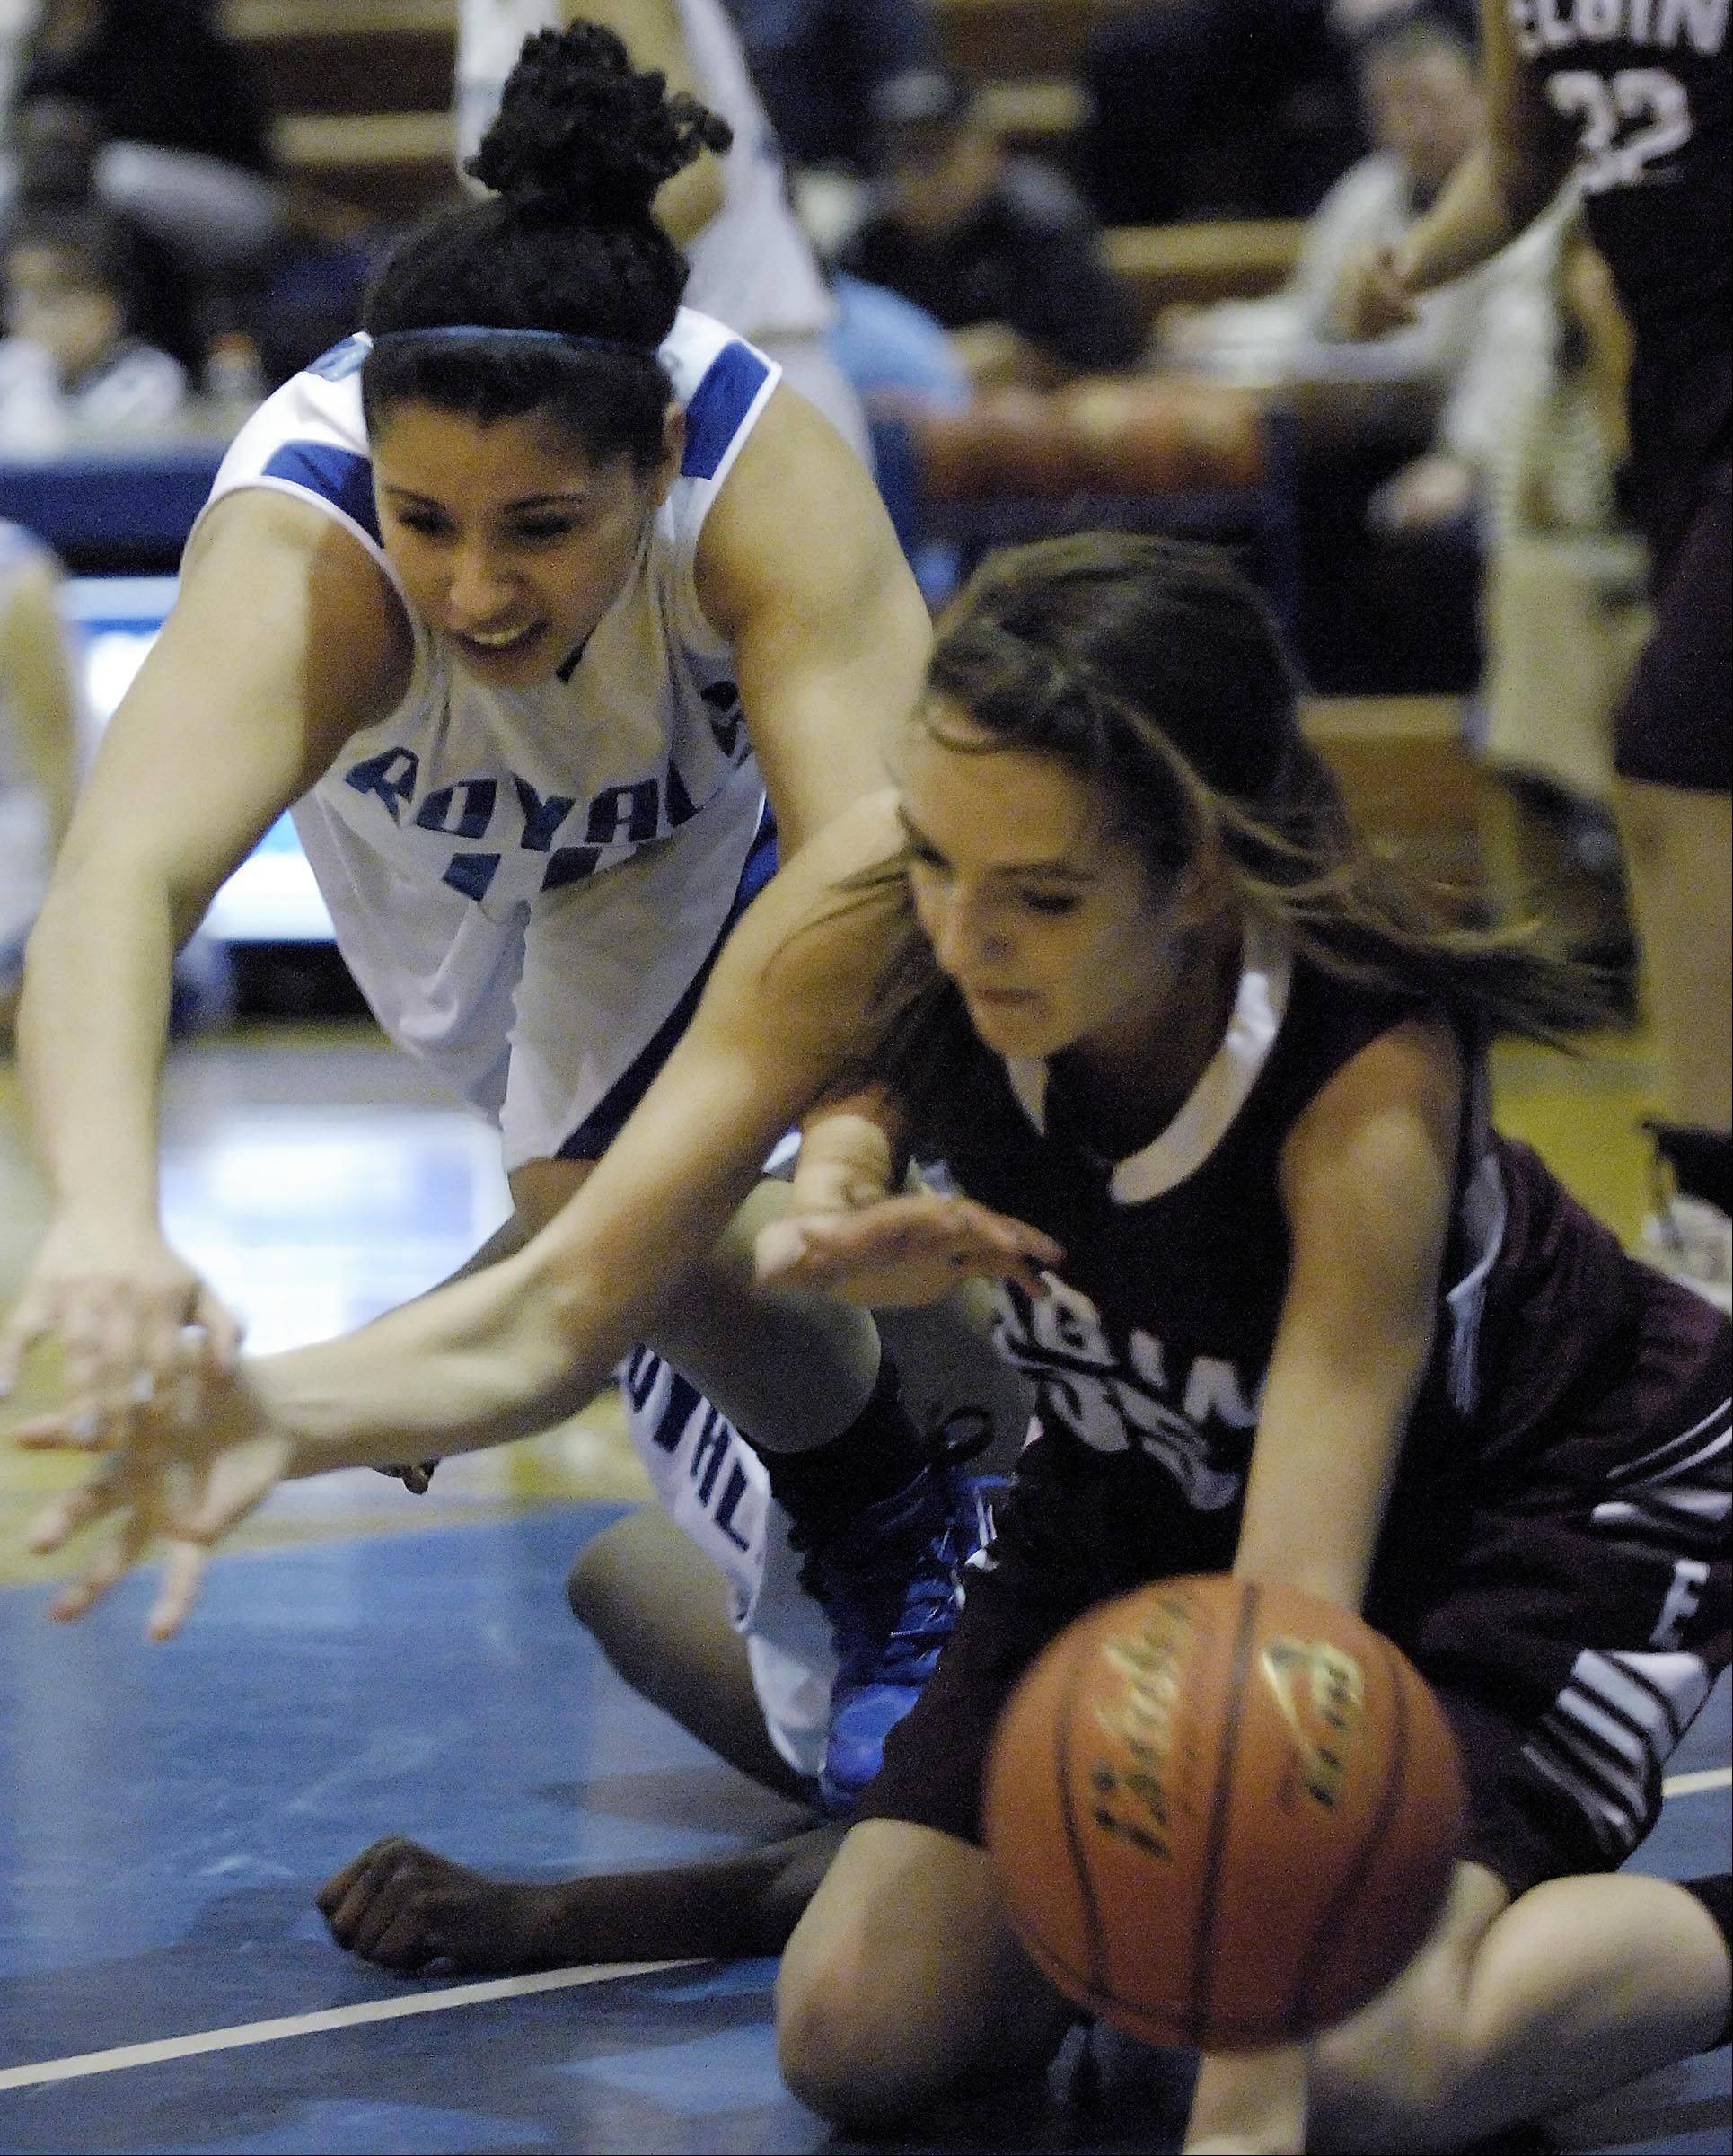 Elgin's Tamara Milosevic and Larkin's Amber McGhee, left, lose the ball out of bounds.